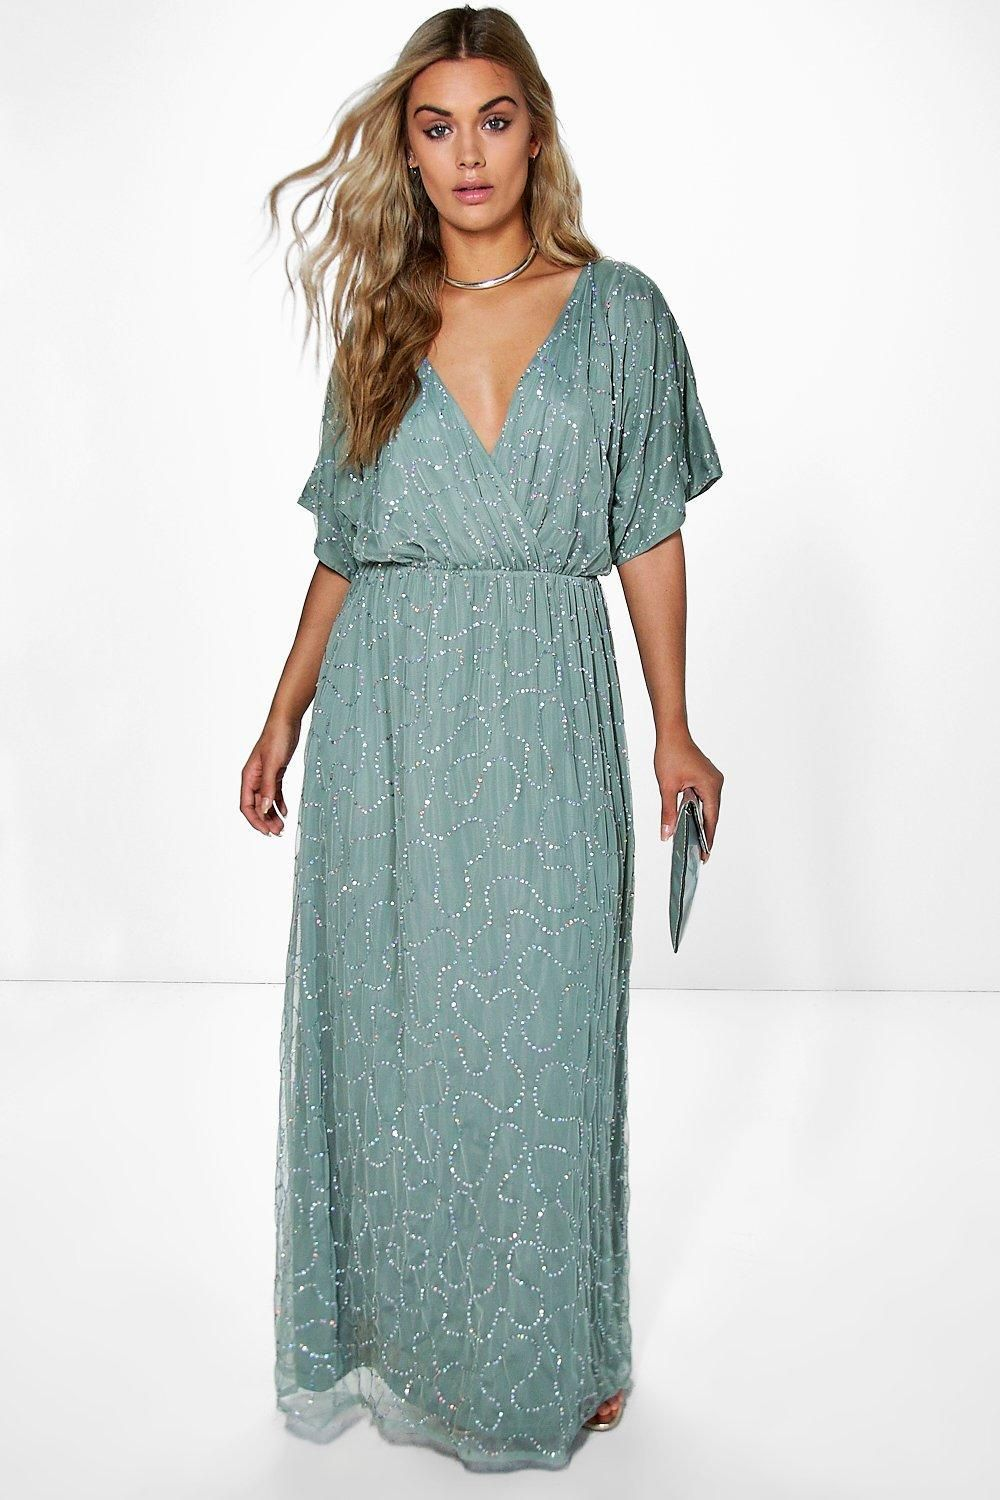 Boohoo Plus You Ll Find Full On Fashion For The Fuller Figure With The Boohoo Plus Range De Wedding Attire Guest Plus Size Wedding Guest Dresses Guest Attire [ 1500 x 1000 Pixel ]